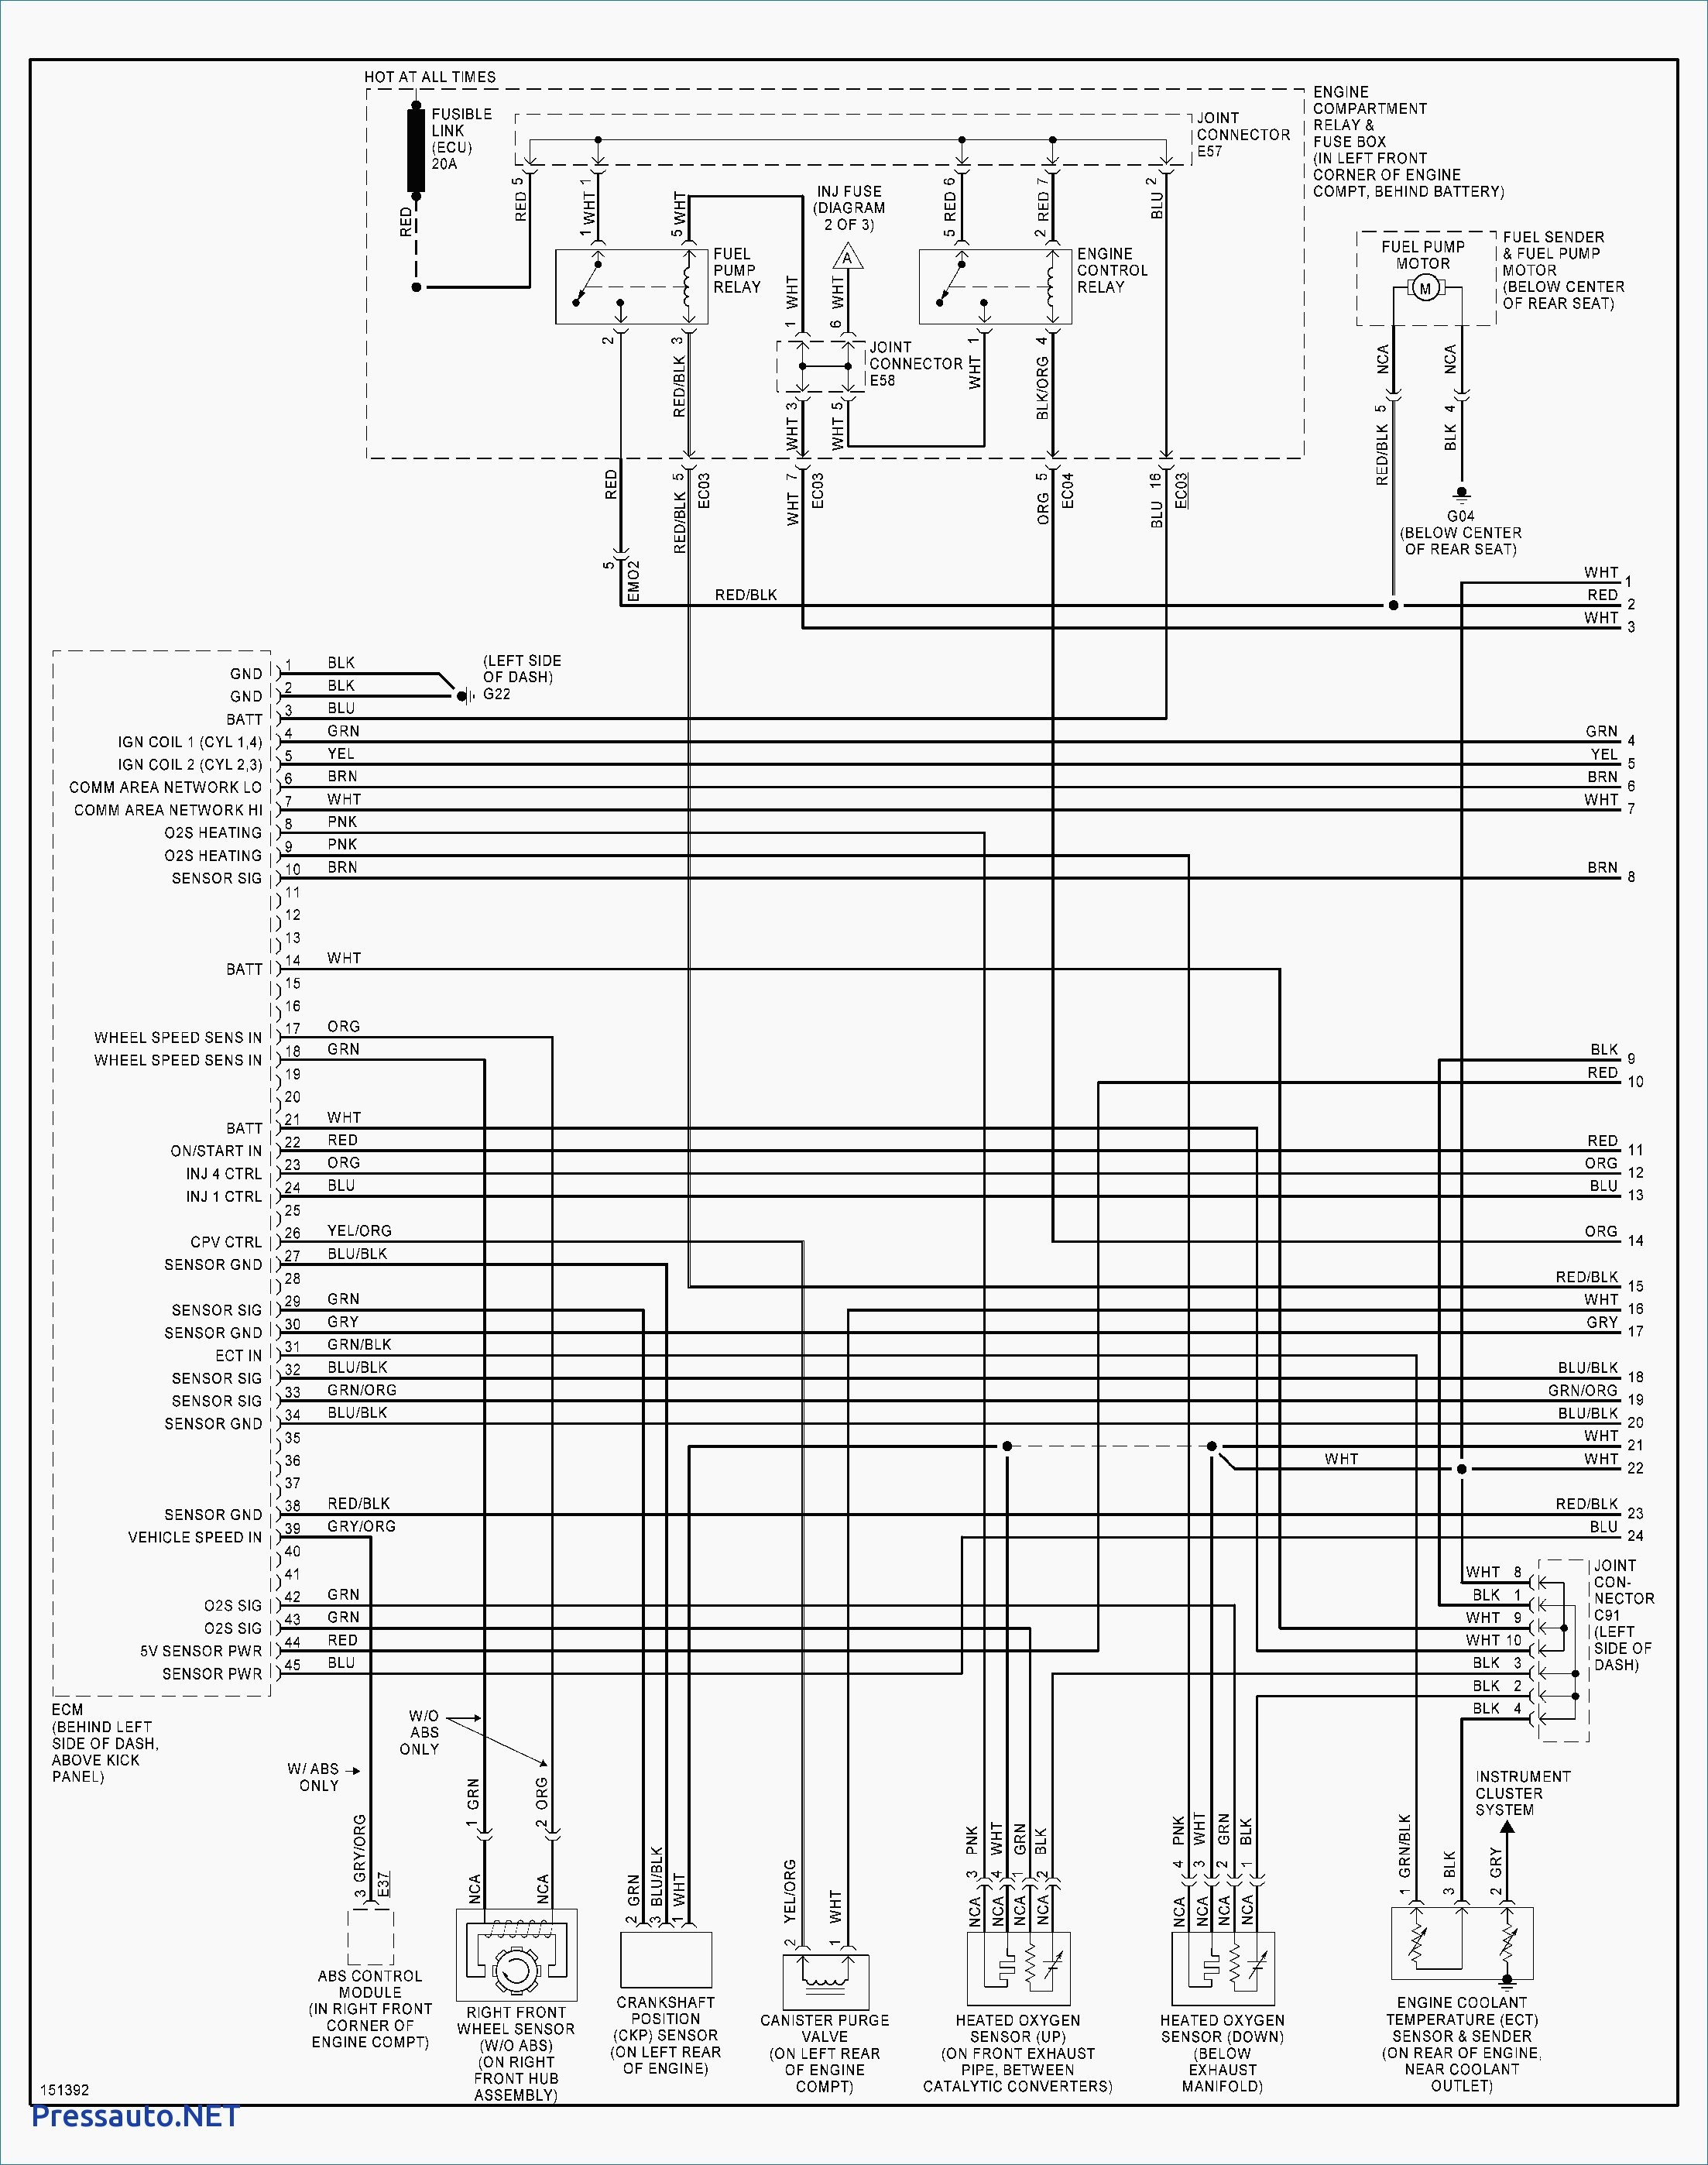 Trailer Wiring Diagram 2004 Hyundai on 2002 kia rio alternator diagram